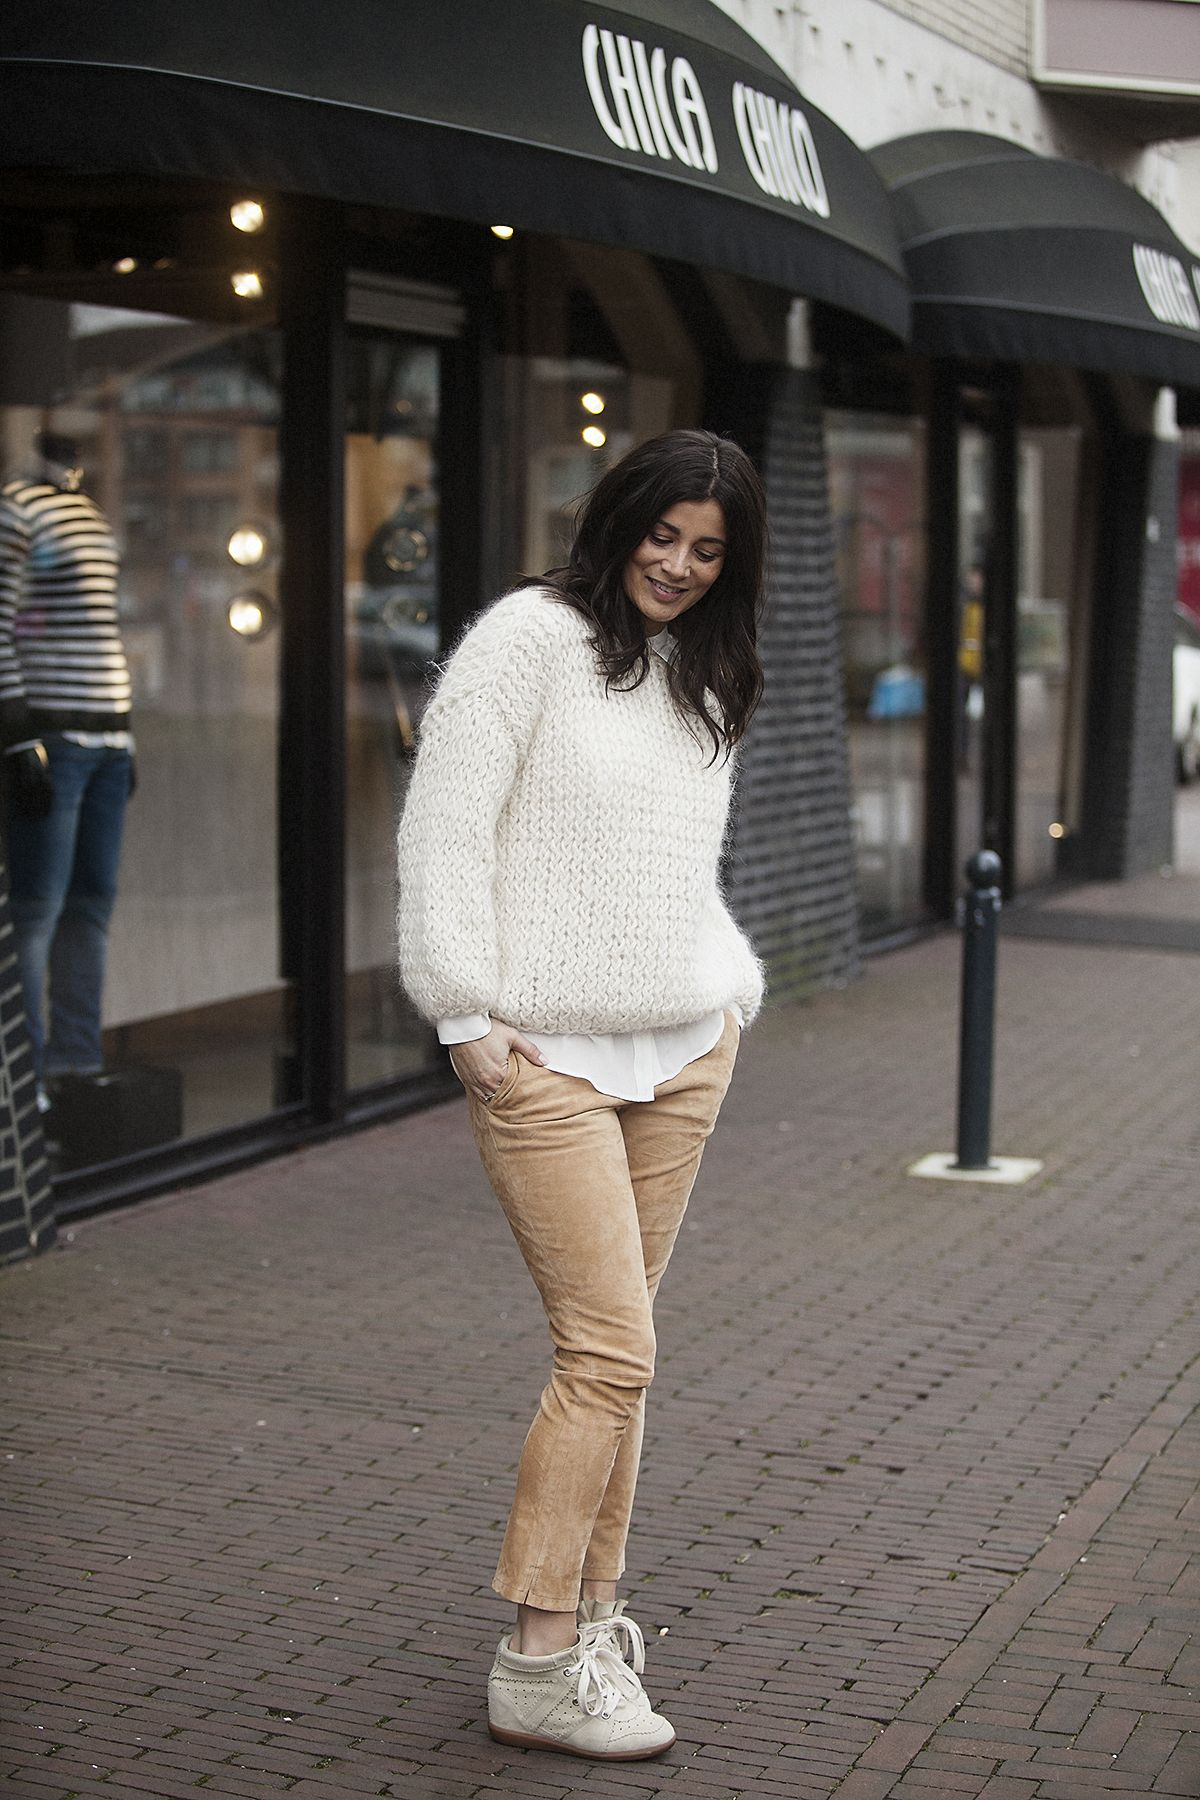 BlogForShops wearing Kiro by Kim handknitted sweater